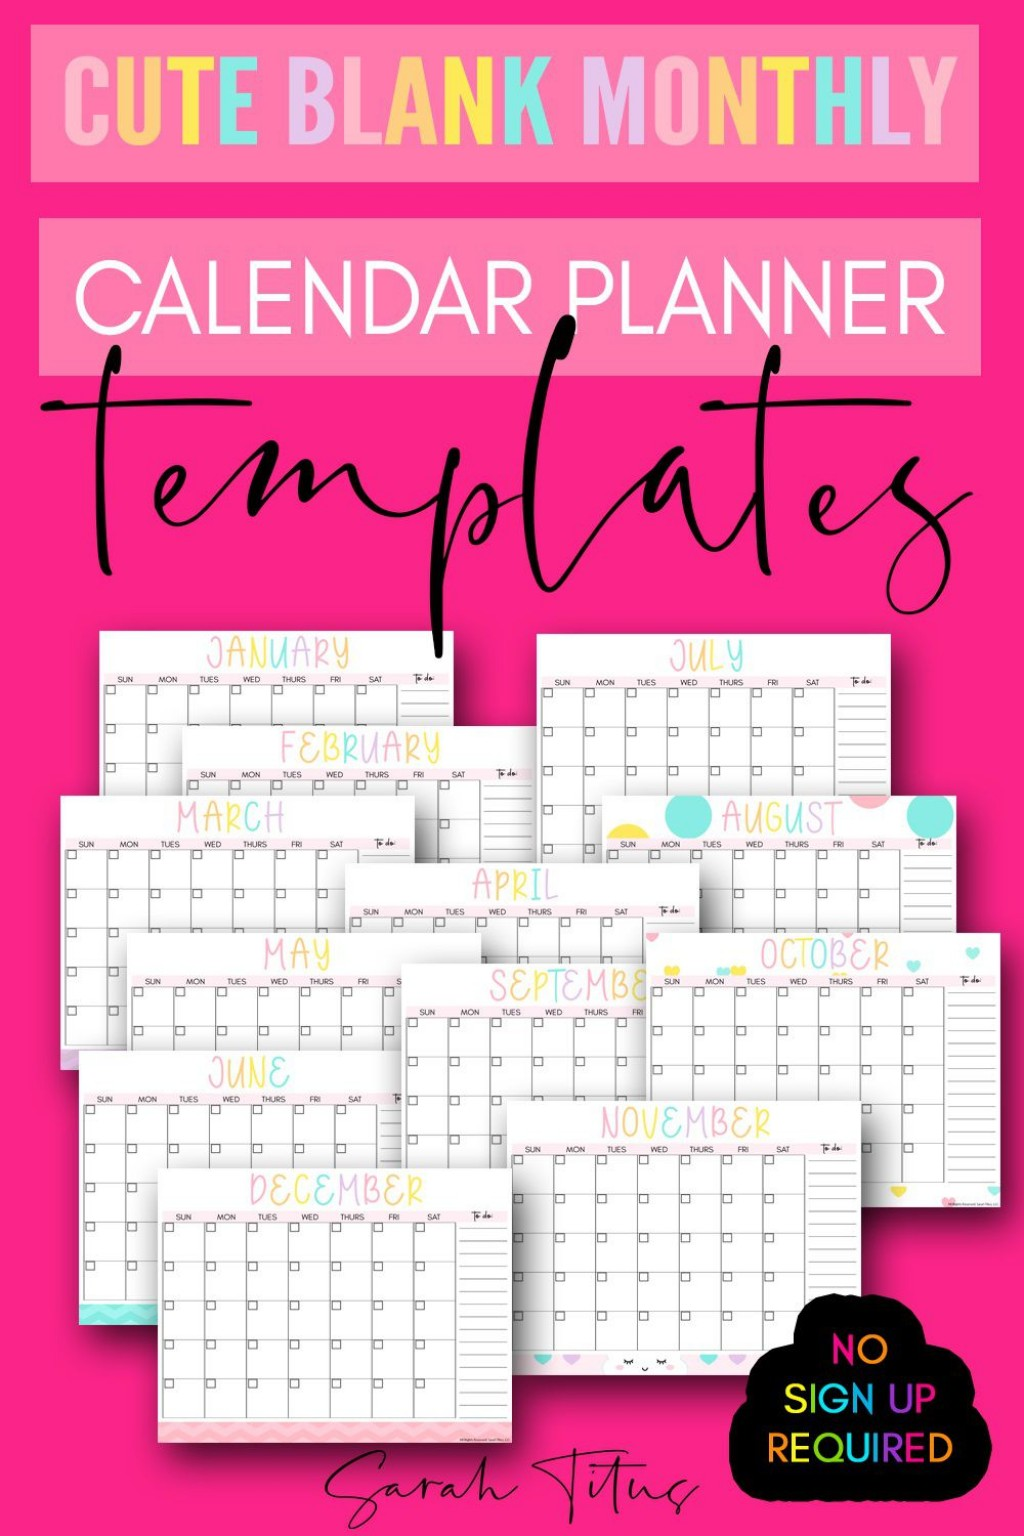 008 Remarkable Free Printable Blank Monthly Calendar Template Picture Large